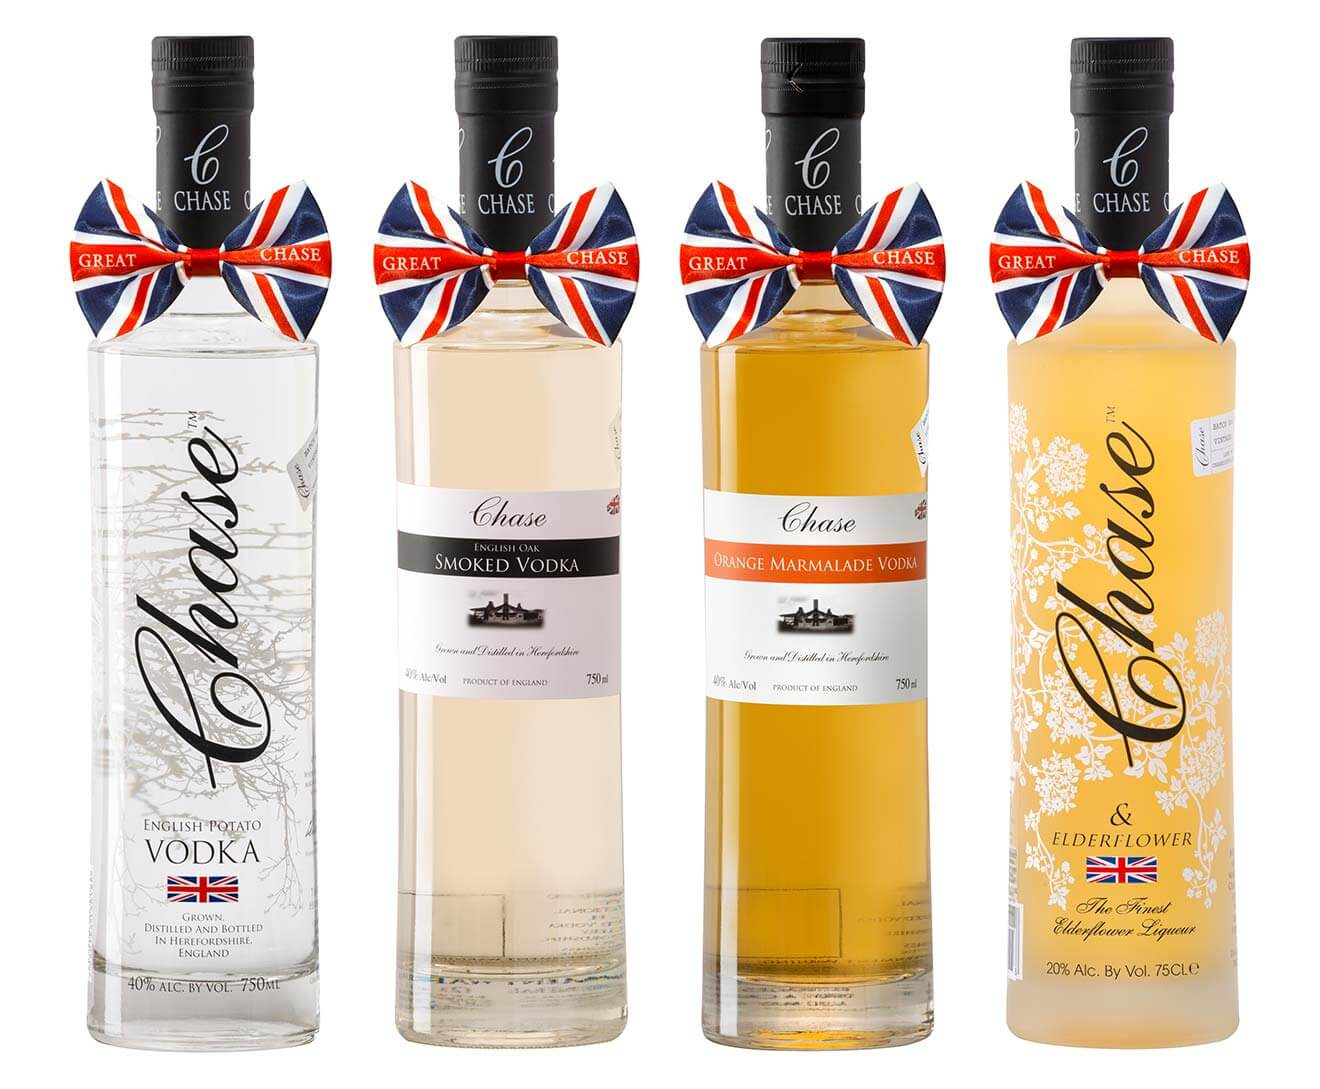 Chase Bottle Varieties including, Chase Potato Vodka, Chase Smoked, Chase Marmalade and Chase Elderflower Liqueur, industry news